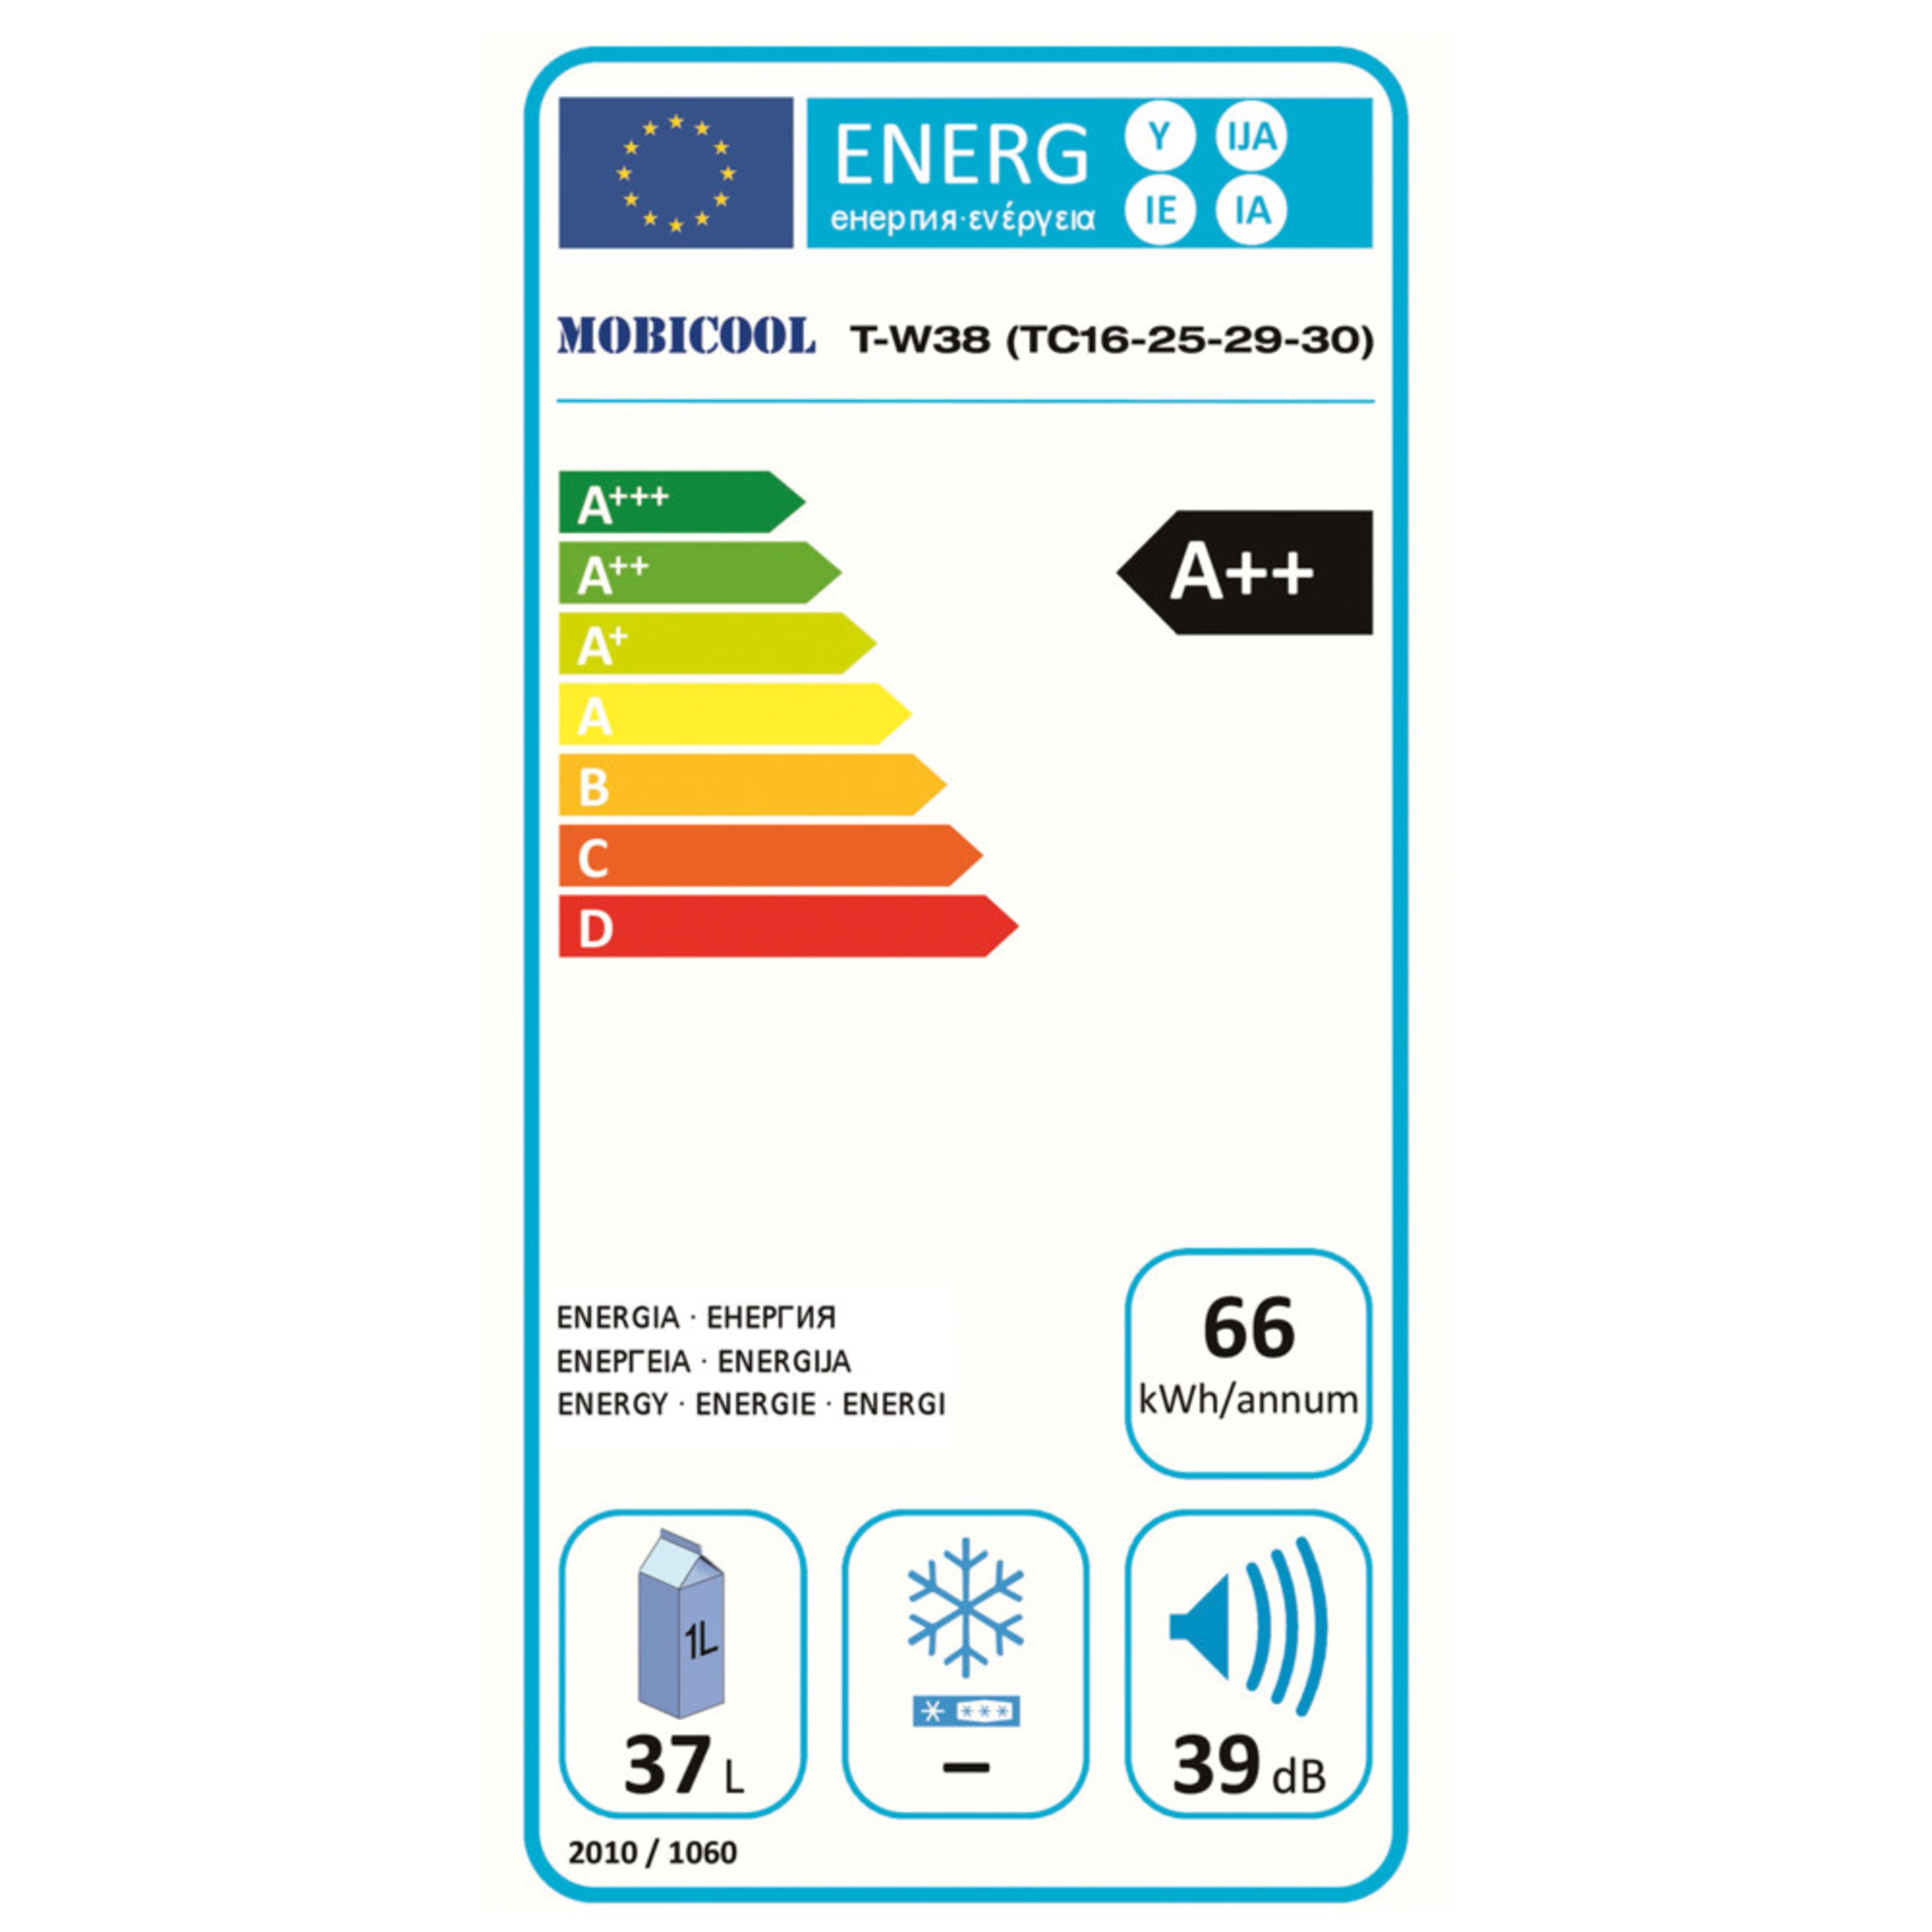 Mobicool W38 AC/DC Energy label